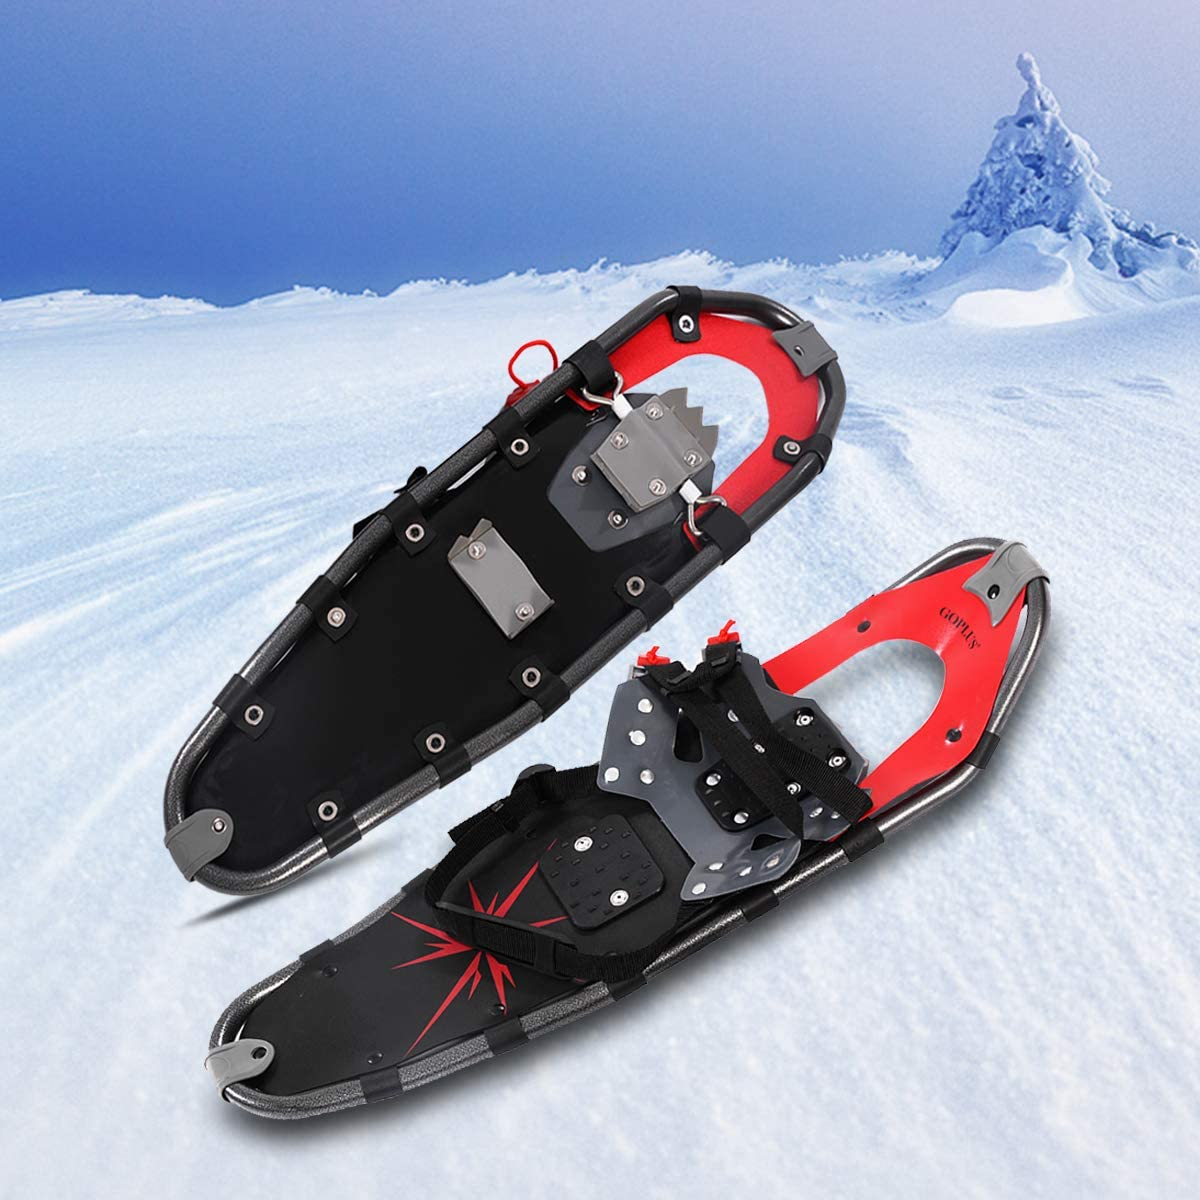 Red Goplus Snowshoes All Terrain Sports 27 with Anti-Shock Adjustable Poles /& Carrying Bag for Adults Snow Shoes